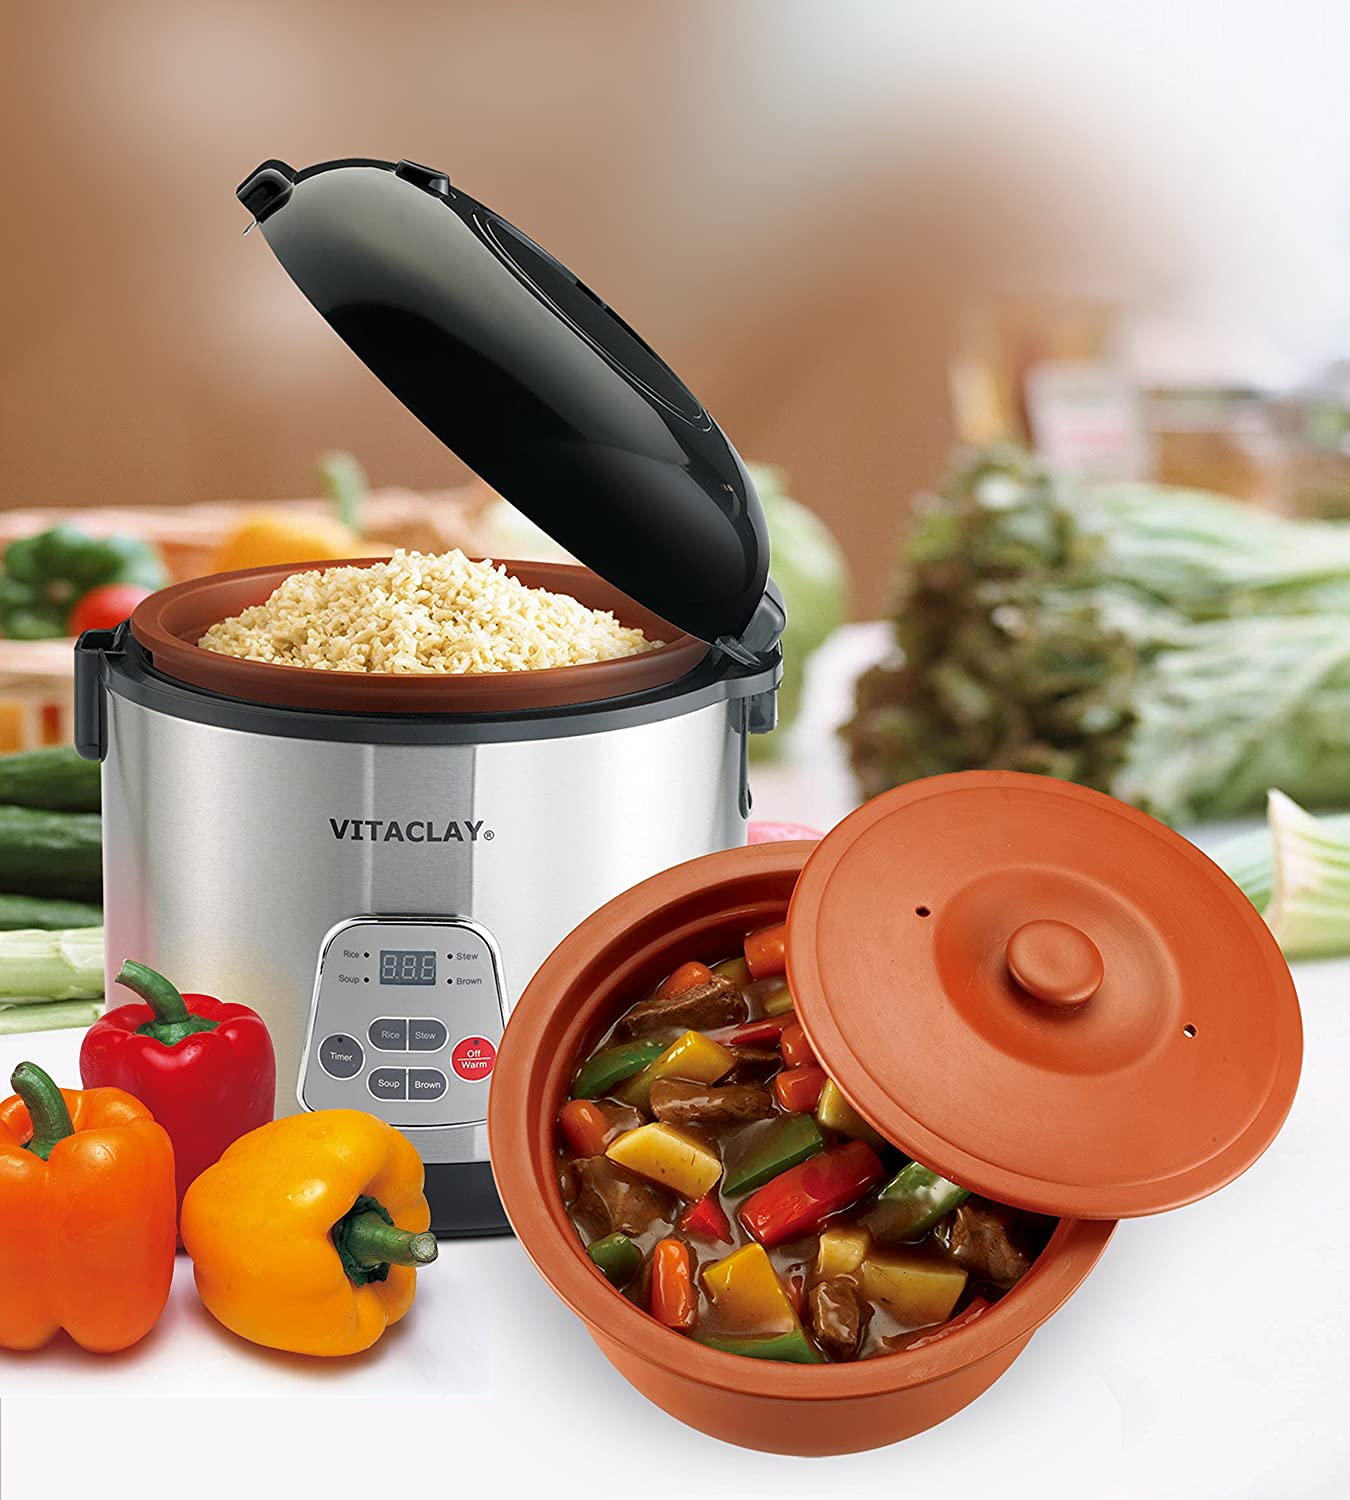 VitaClay 2-in-1 Rice N Slow Cooker in Clay Pot